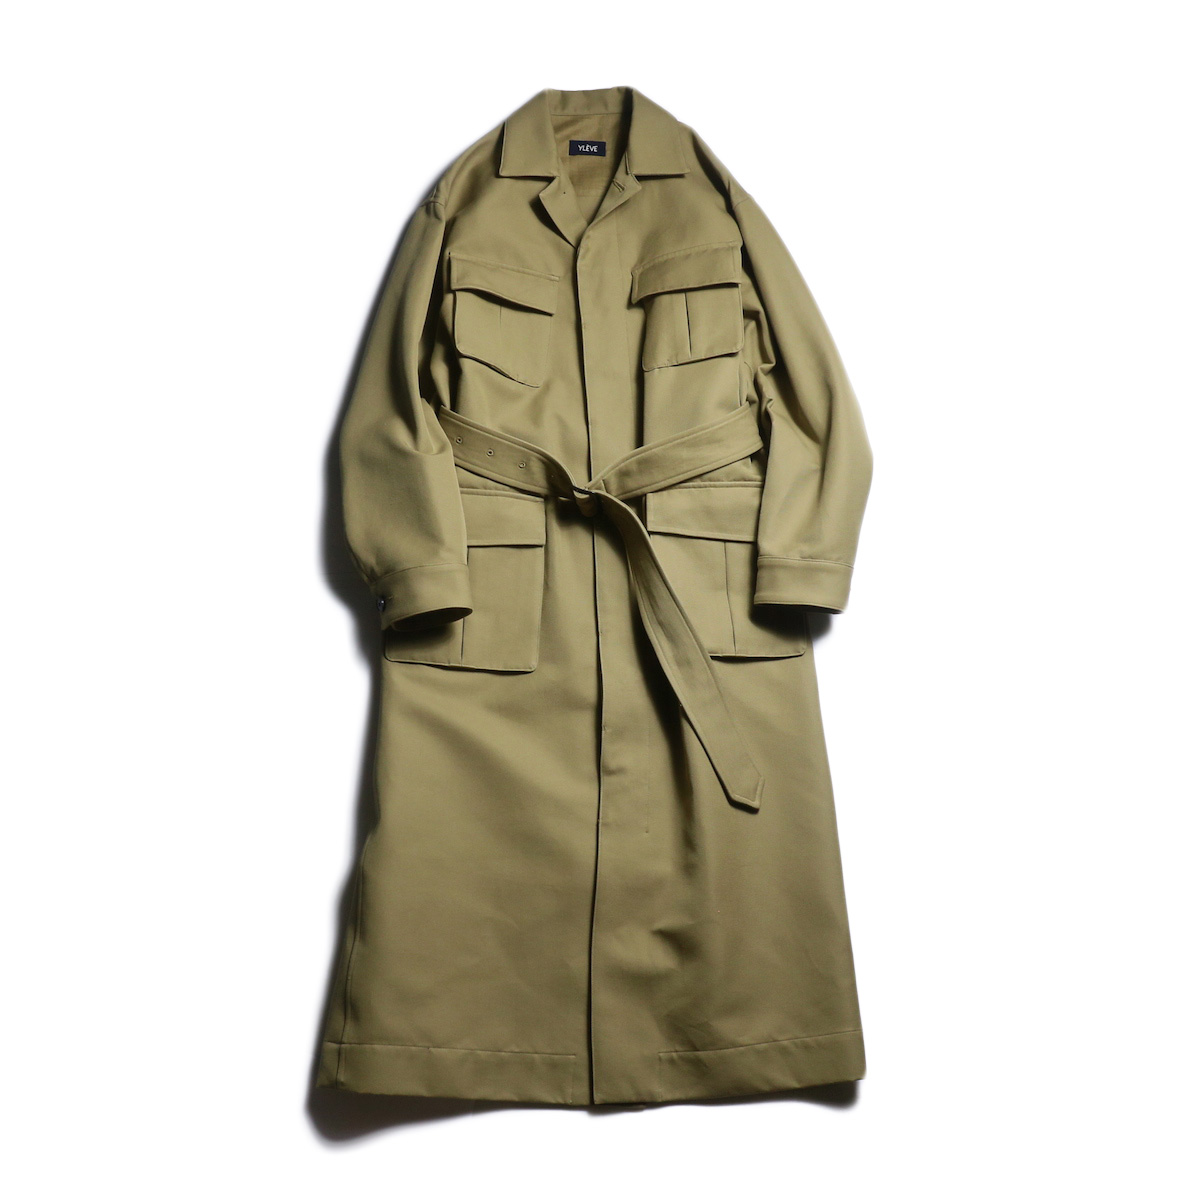 YLEVE / Cotton High Count Twill Co (Tan)